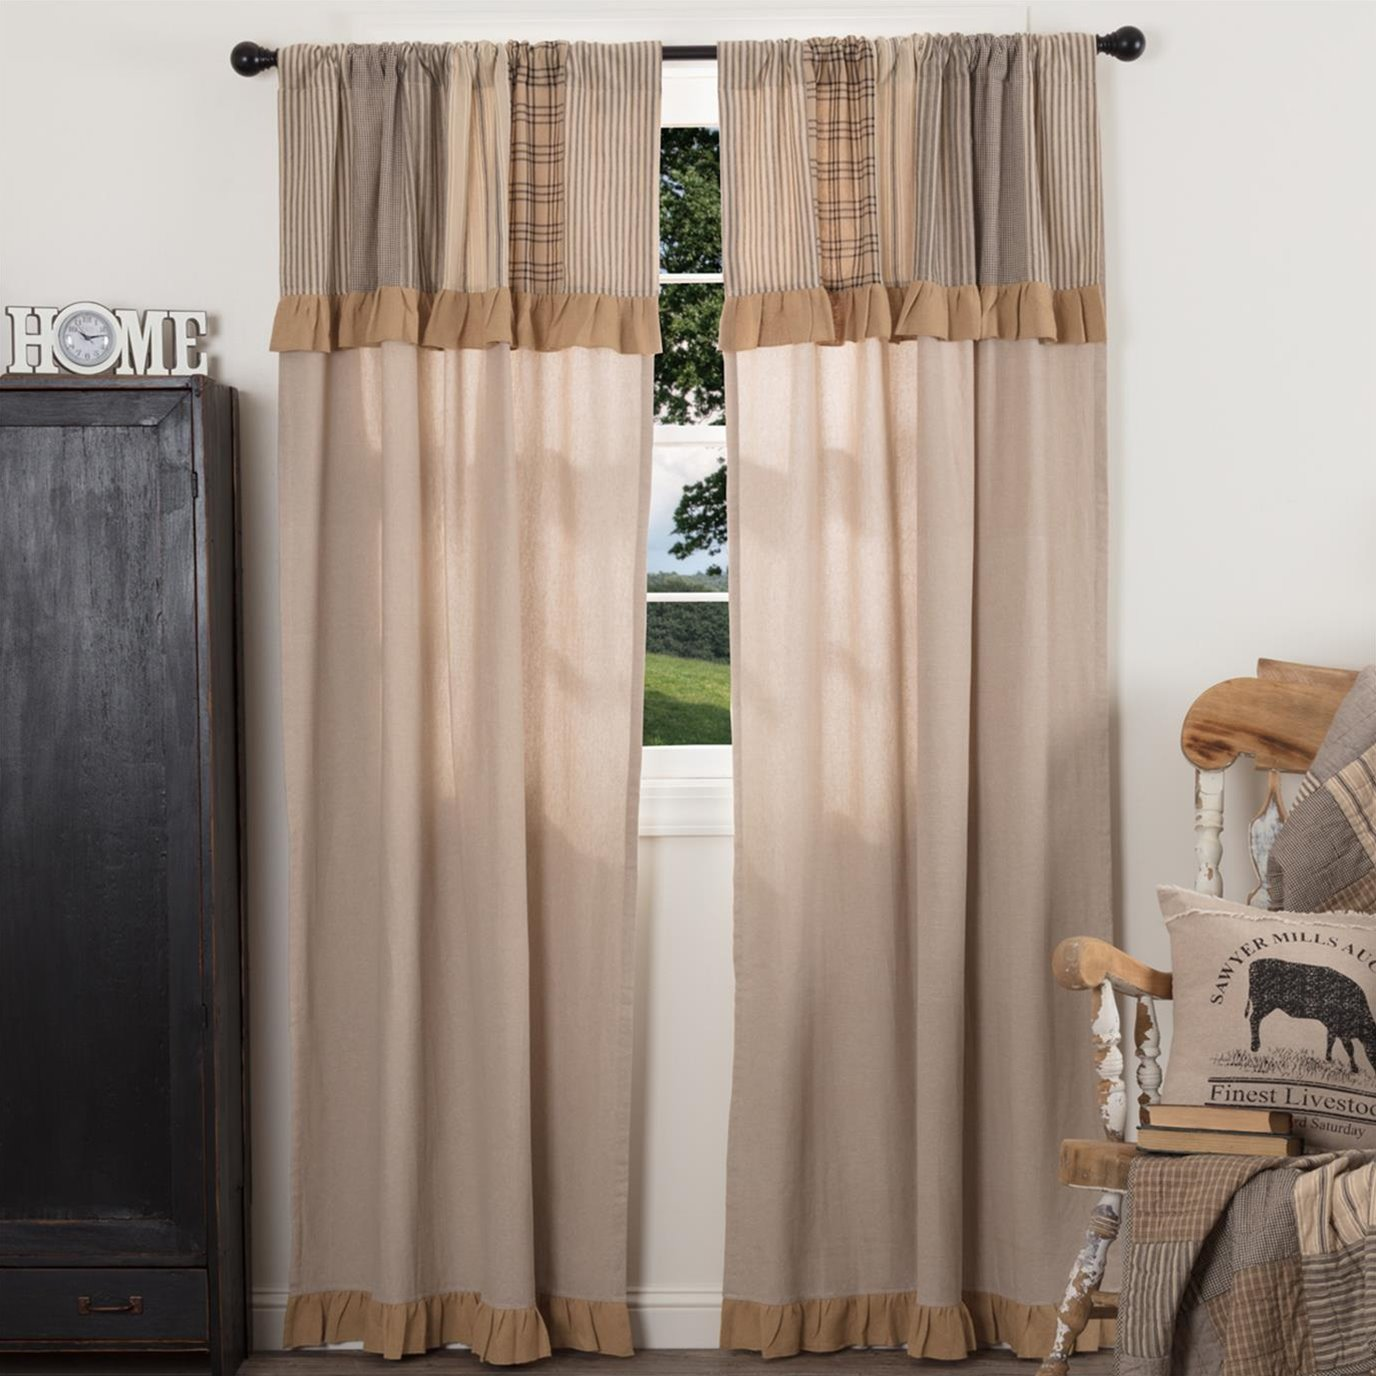 Sawyer Mill Charcoal Panel with Attached Patchwork Valance Set of 2 84x40